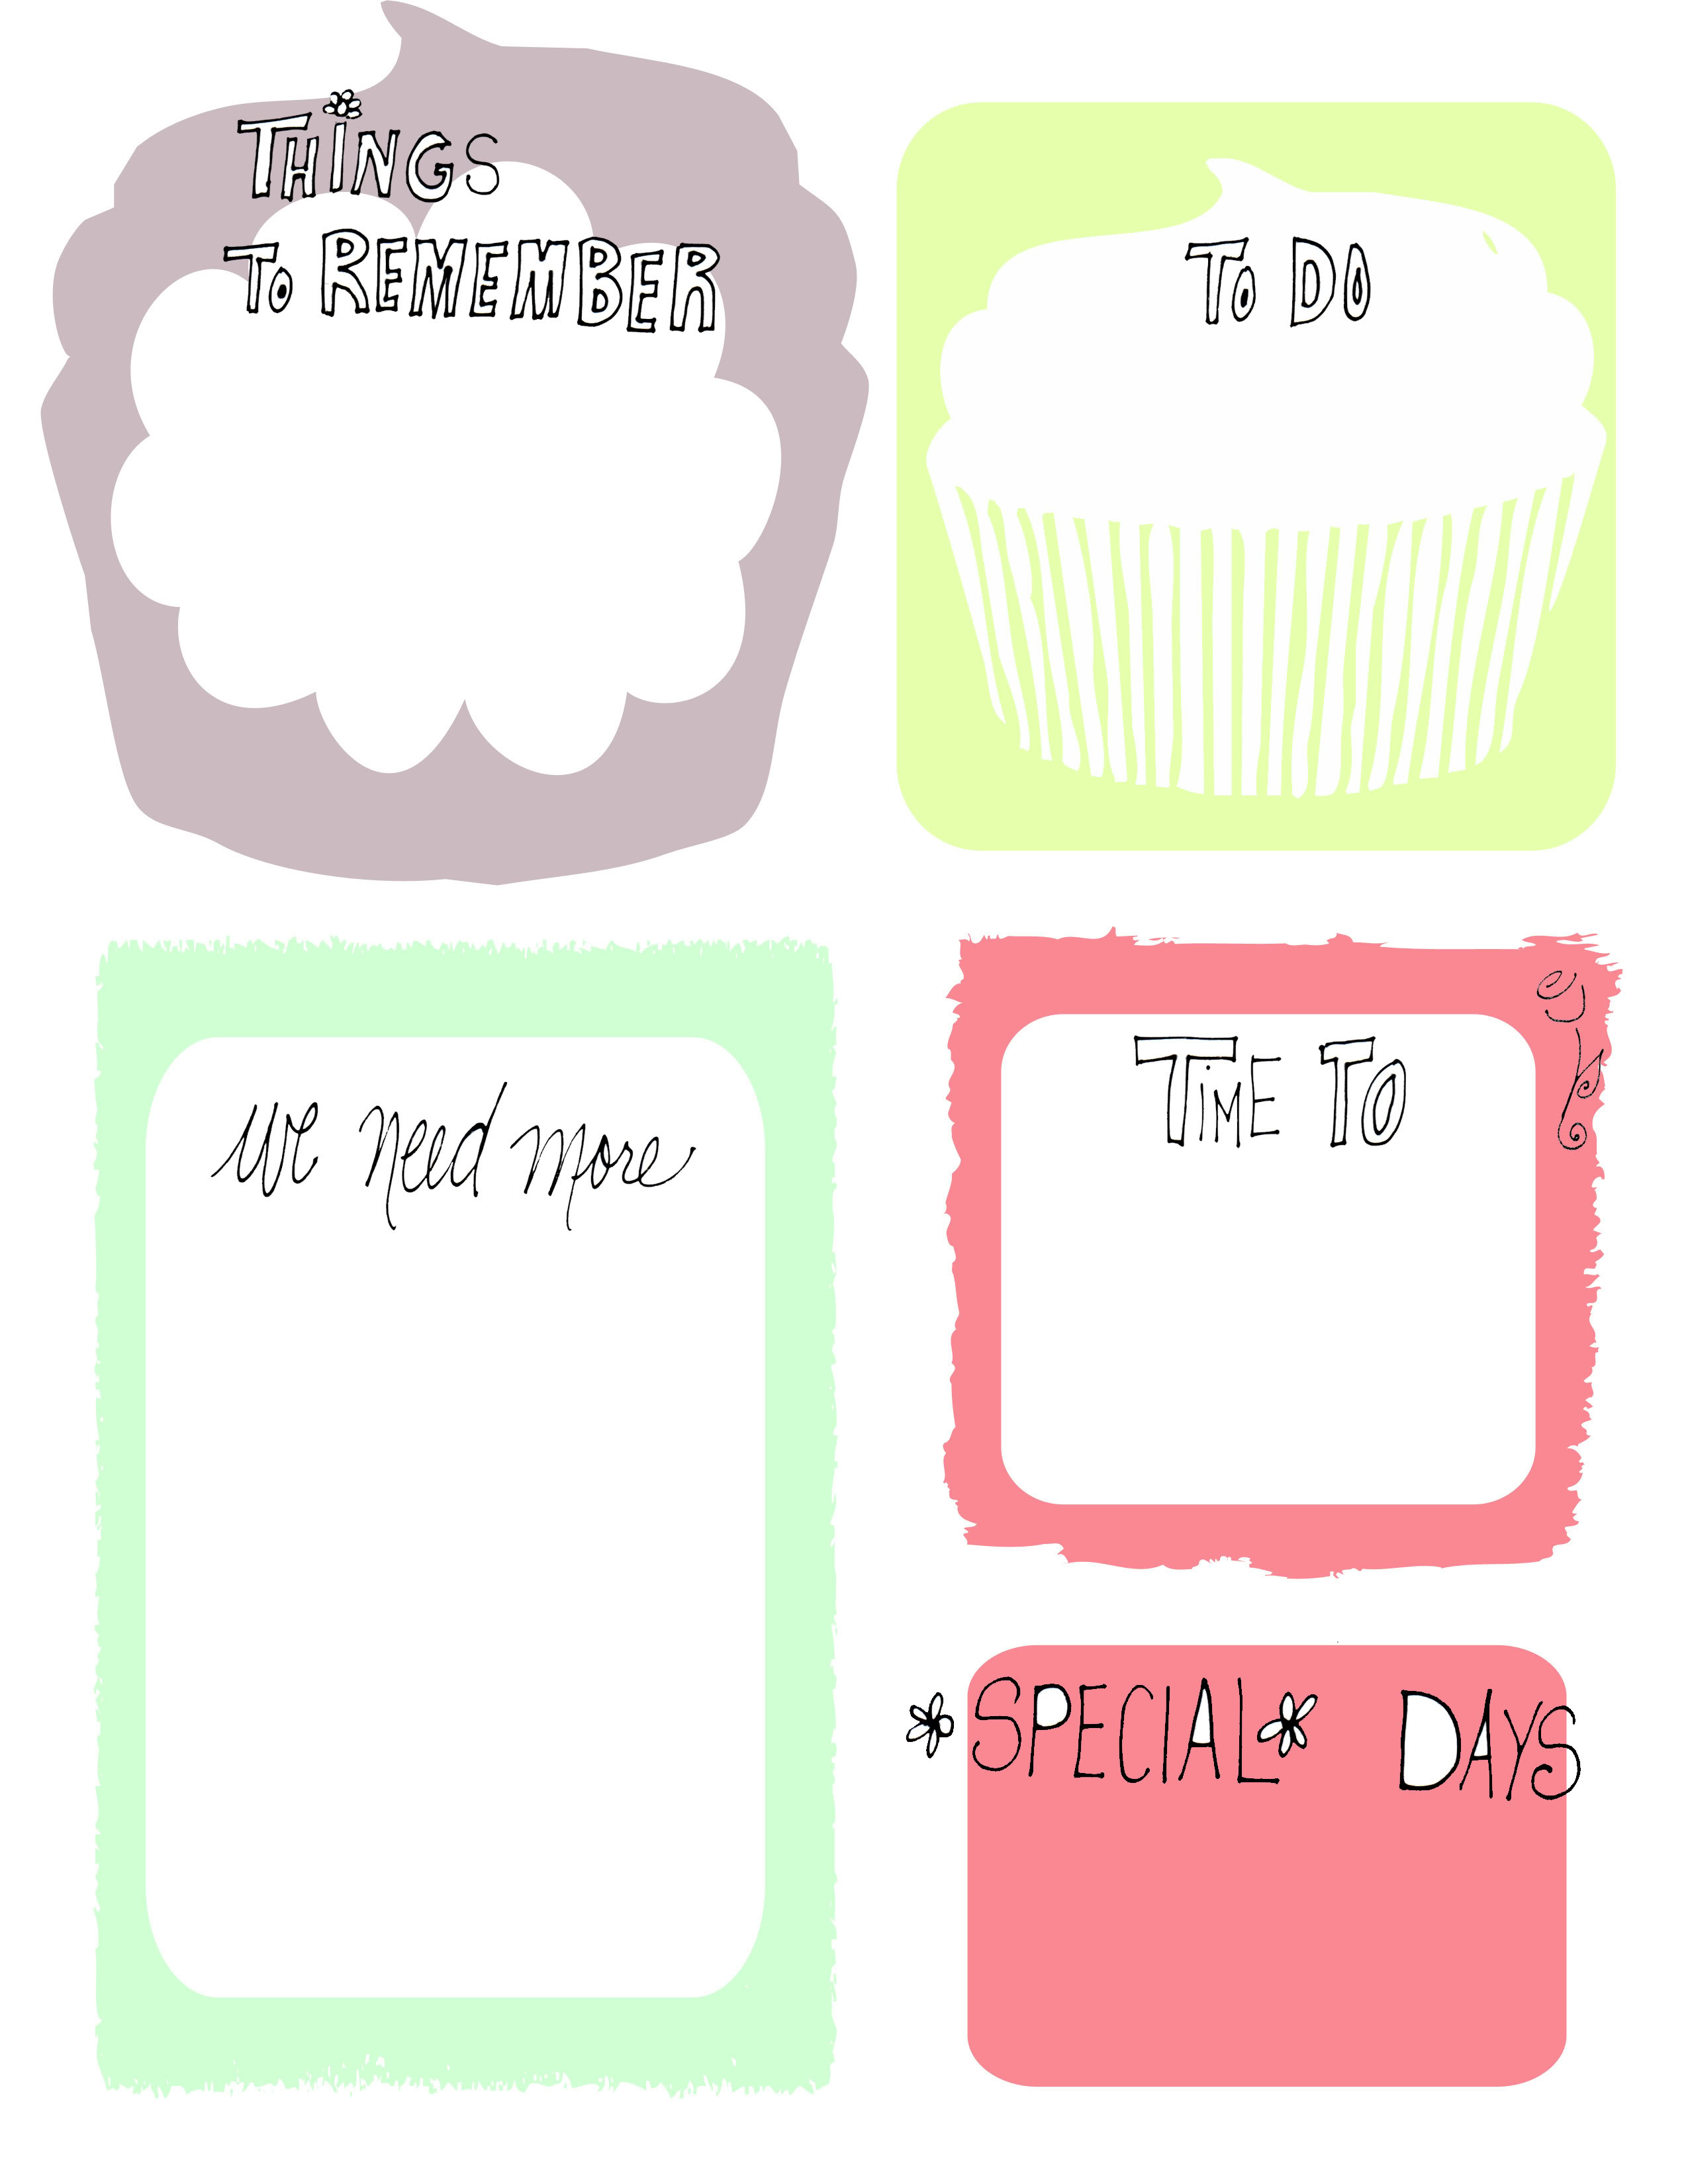 Found This Awesome Cupcake To Do List Via Pintrest The Flying